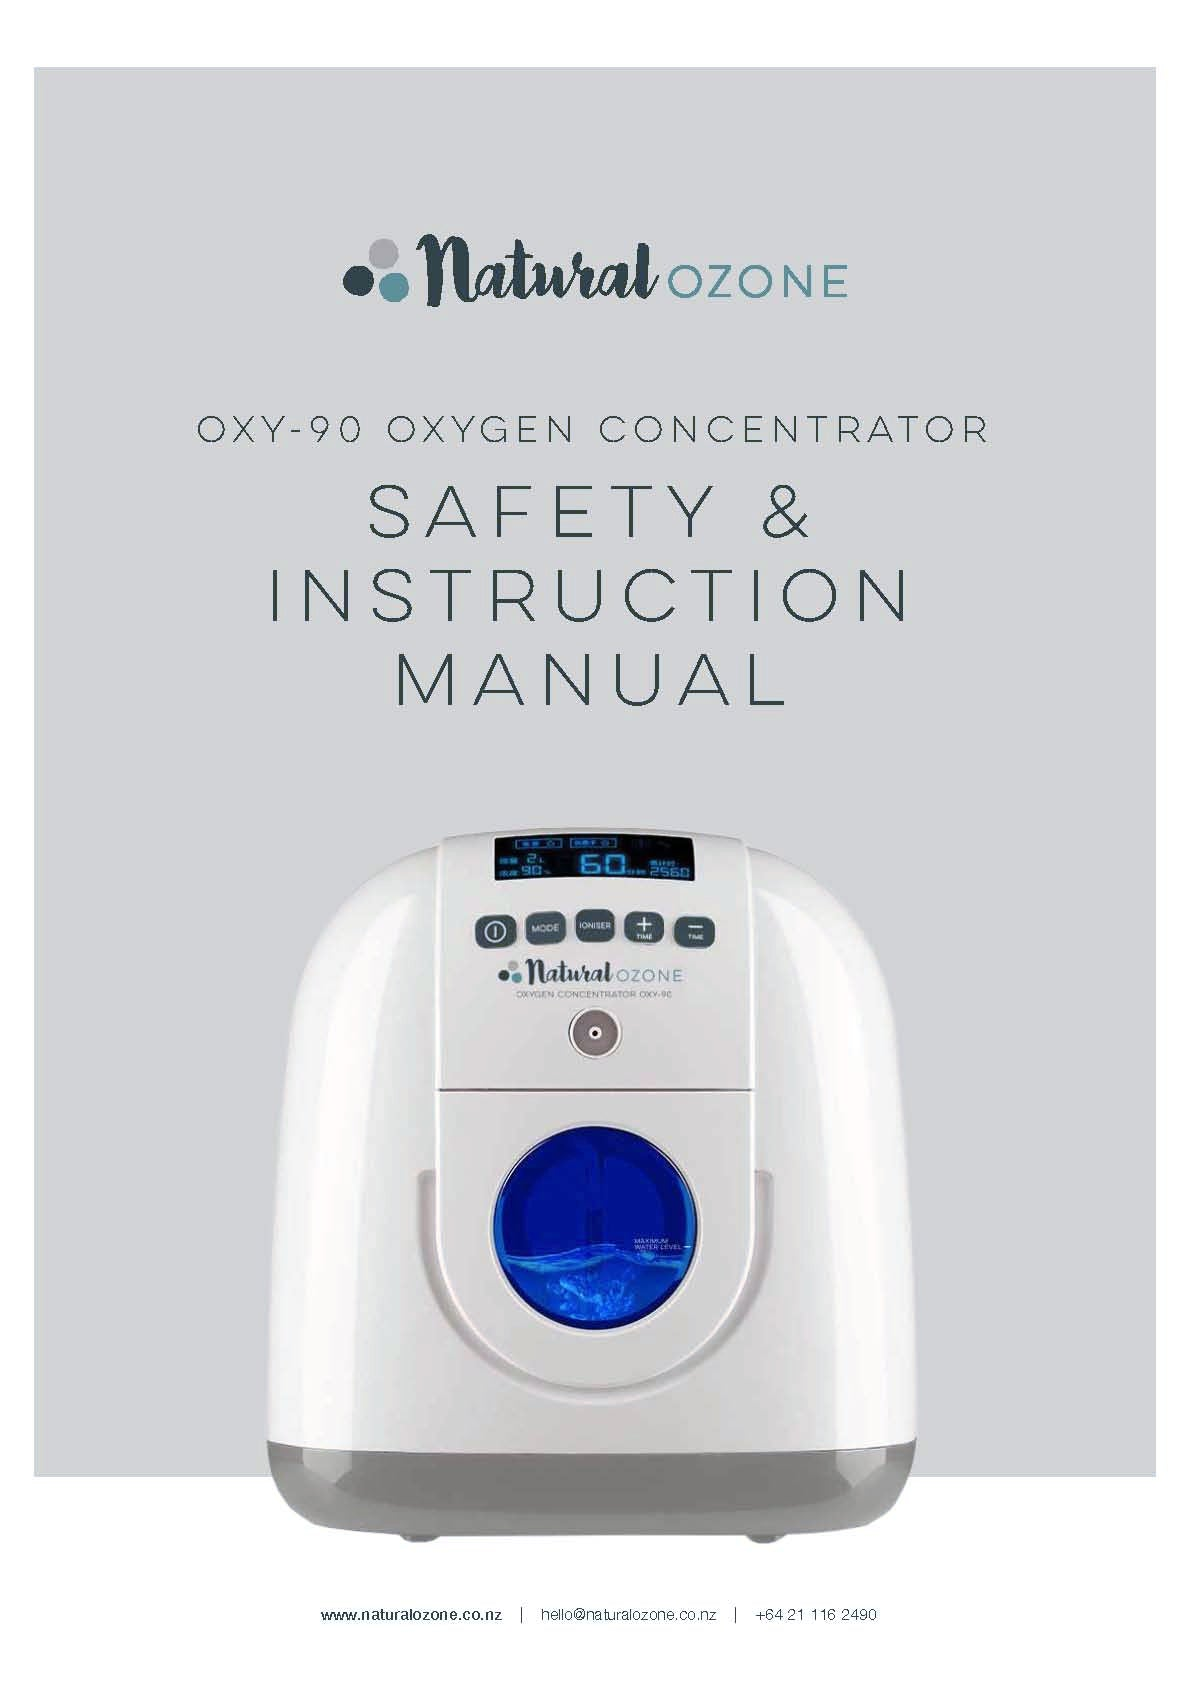 OXY-90 Portable Oxygen Concentrator 2 - 7L 90% Purity